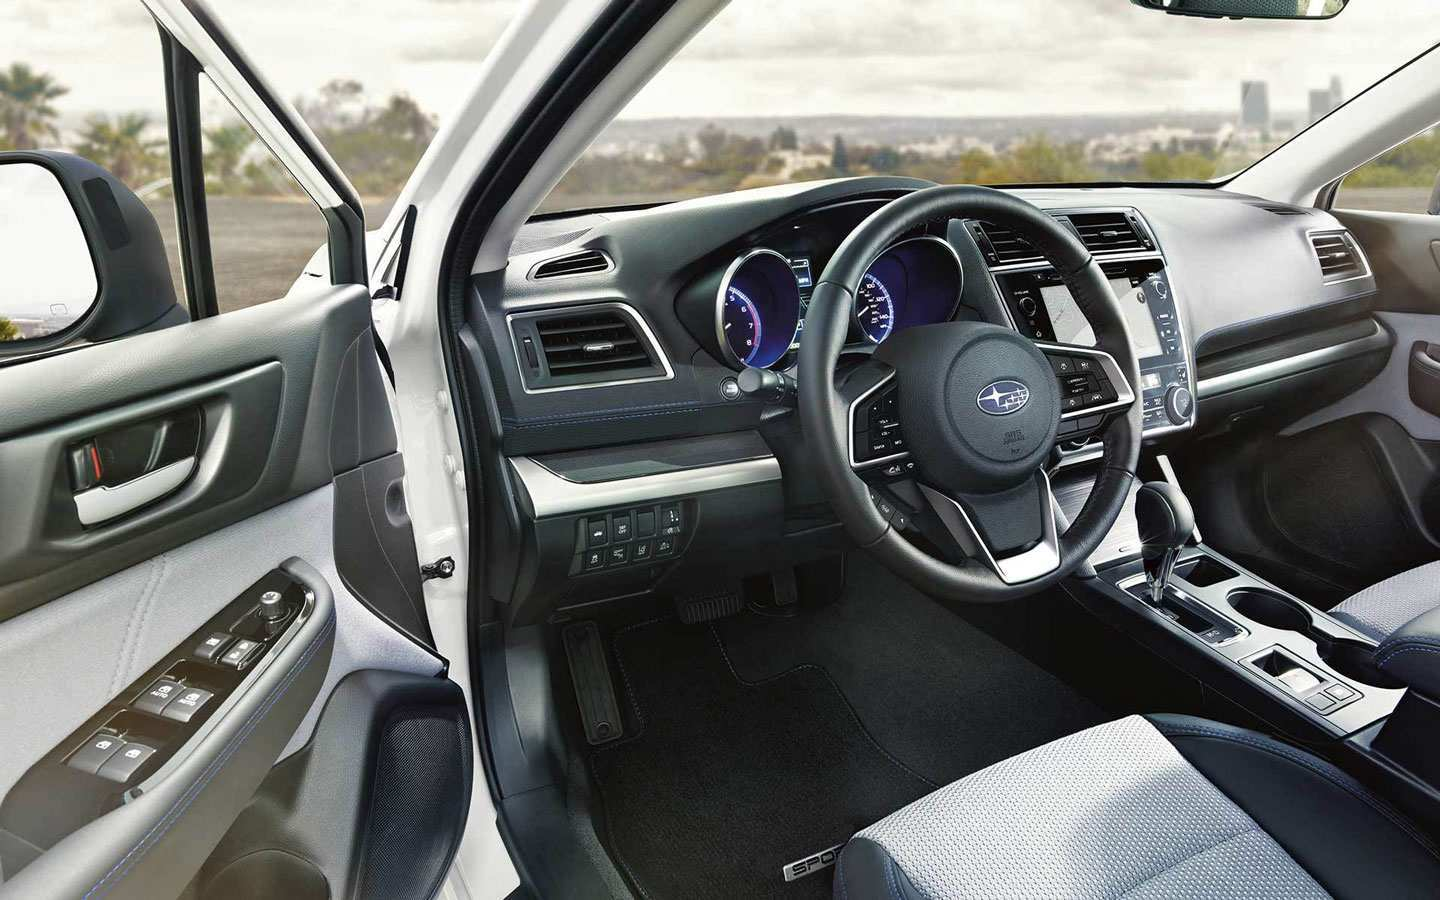 36 New 2019 Subaru Legacy Price And Review